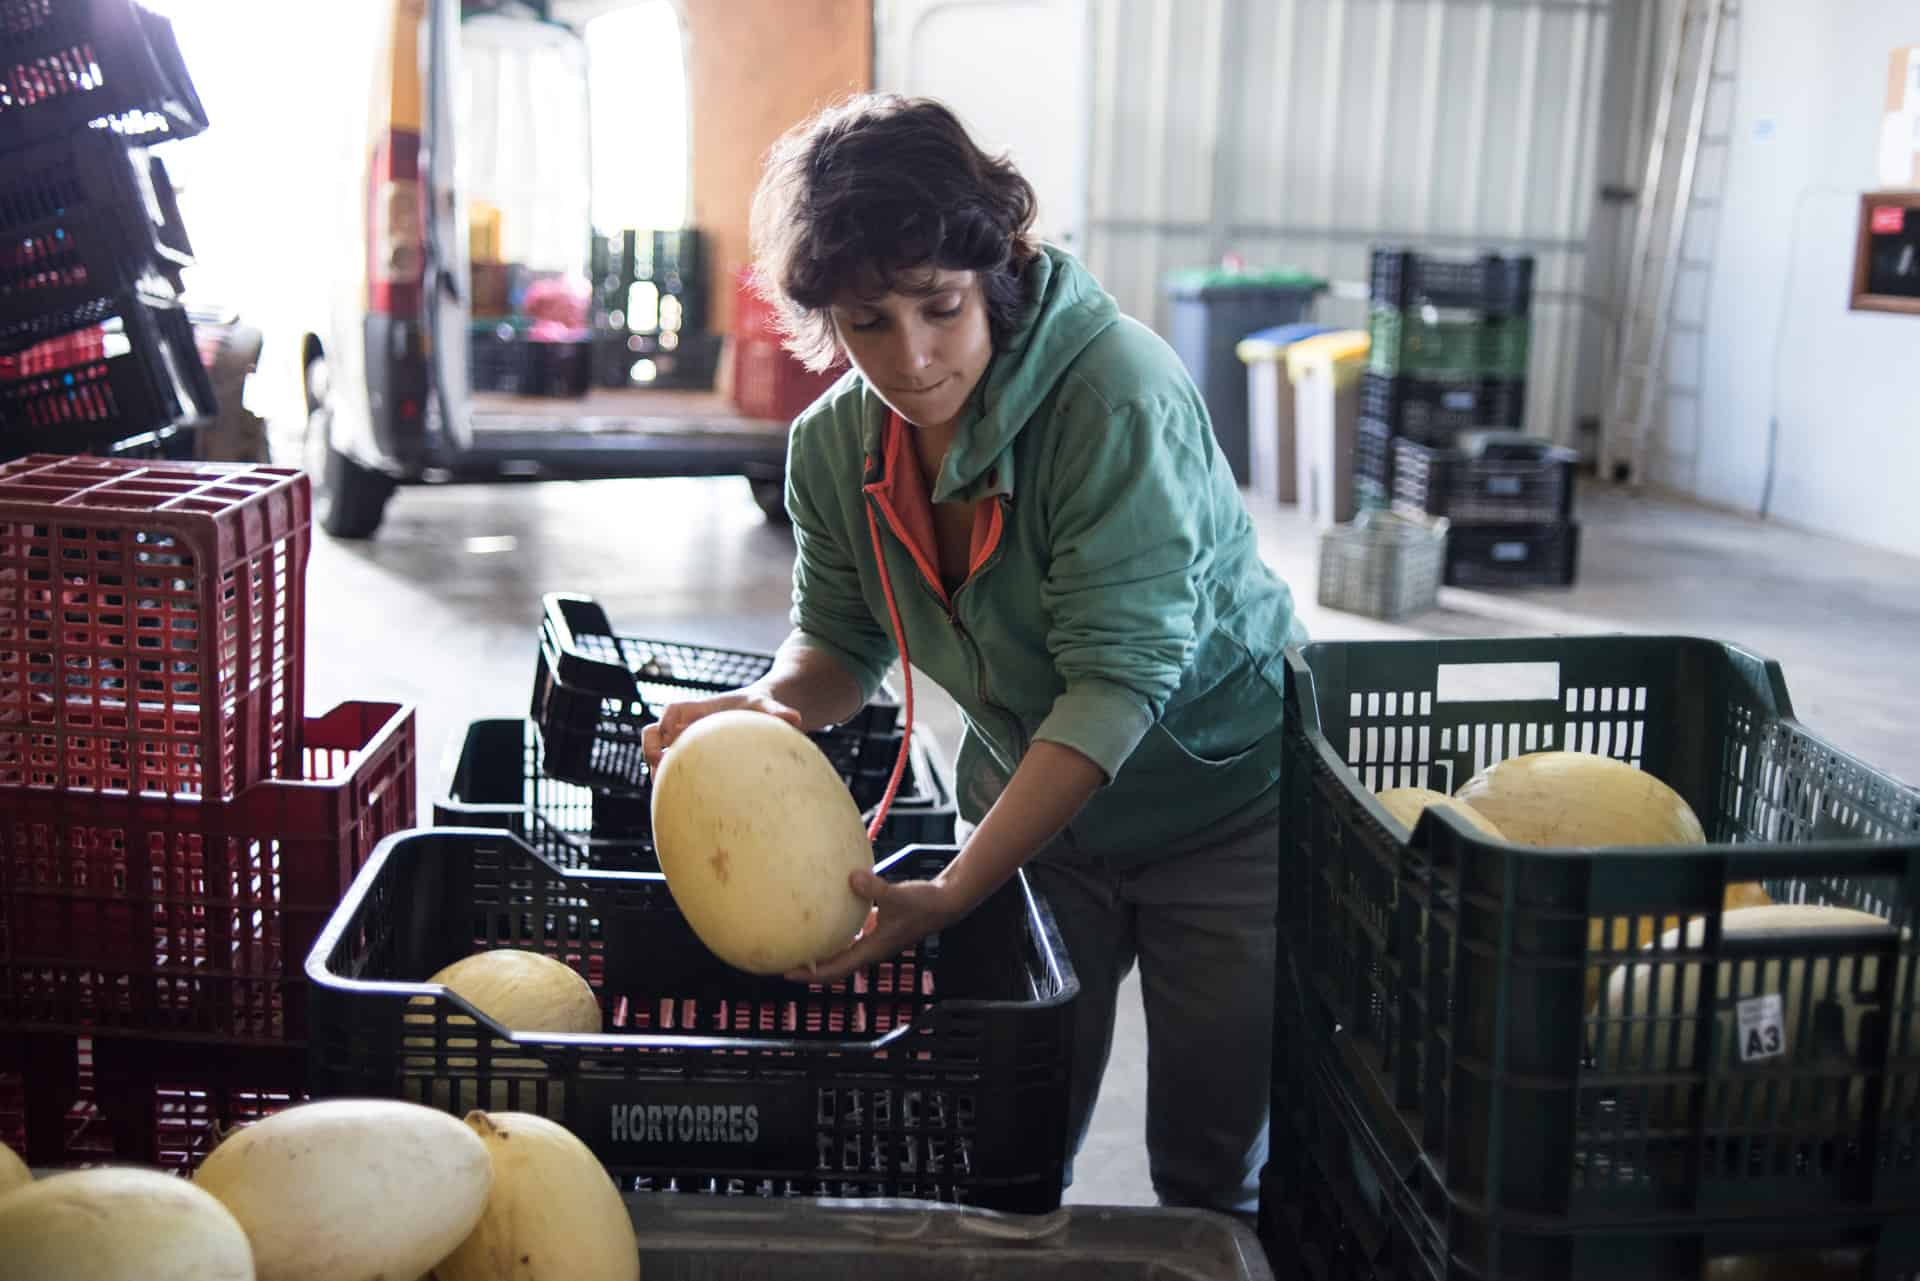 Reducing farm-level food waste - Documentary Photography by Chris King for Open Eye Media